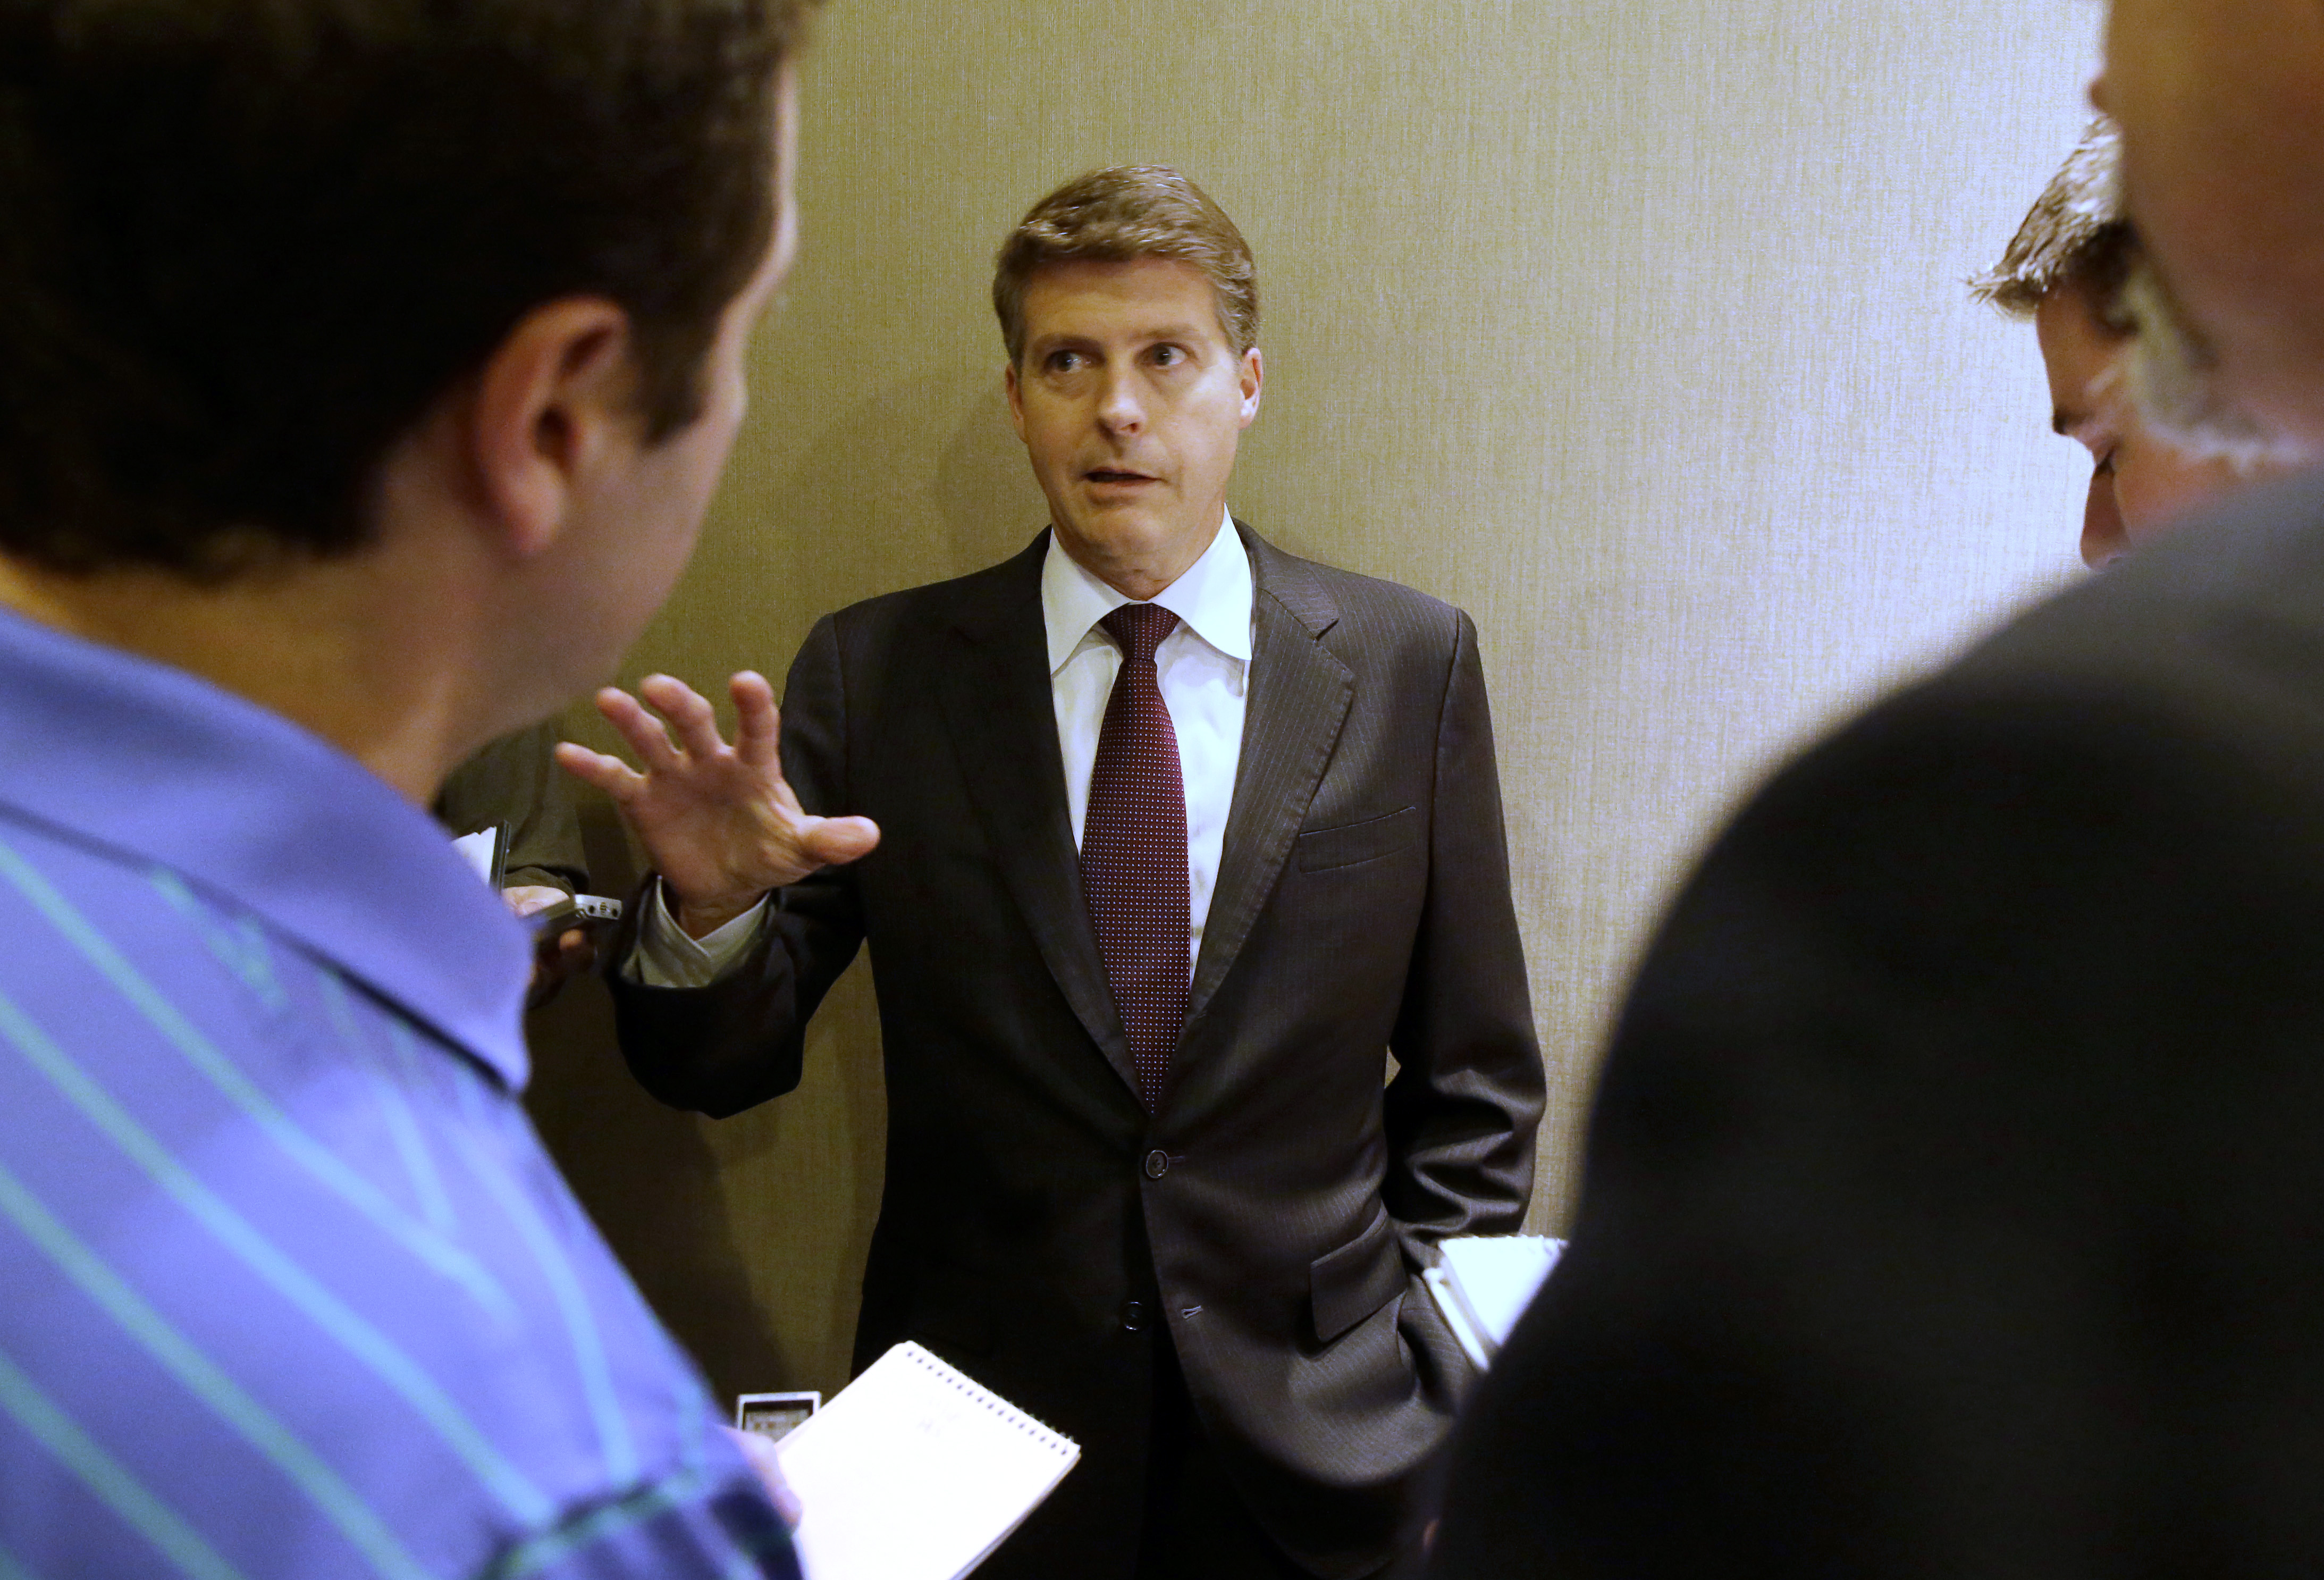 New York Yankees owner Hal Steinbrenner speaks to reporters in the lobby of the hotel hosting the baseball owners meeting, Wednesday, Nov. 18, 2015, in Dallas. (AP Photo/LM Otero)